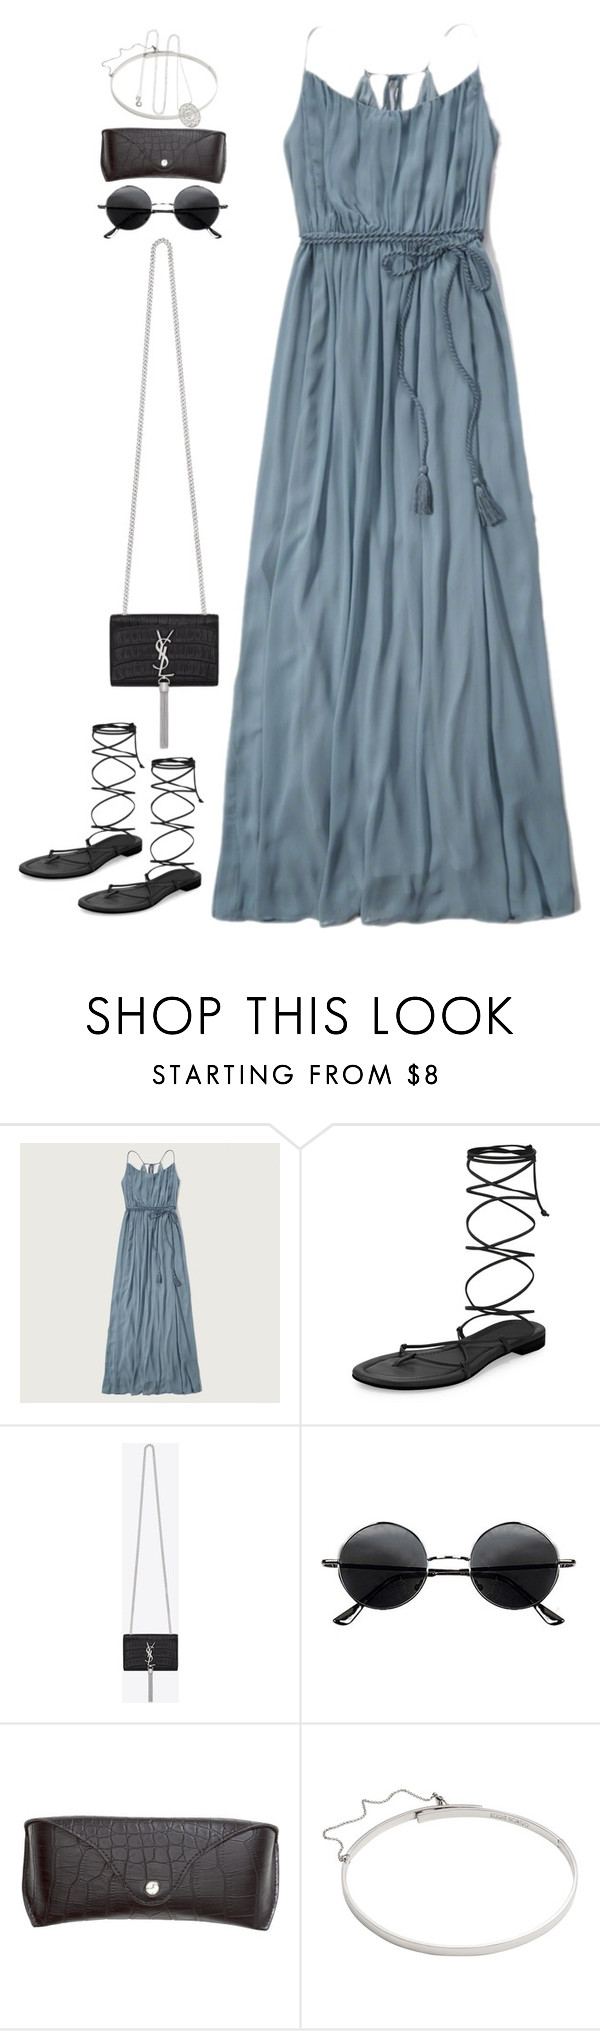 """""""Untitled#4216"""" by fashionnfacts ❤ liked on Polyvore featuring Abercrombie & Fitch, Michael Kors, Yves Saint Laurent, Retrò, H&M, Eddie Borgo and Kenneth Jay Lane"""